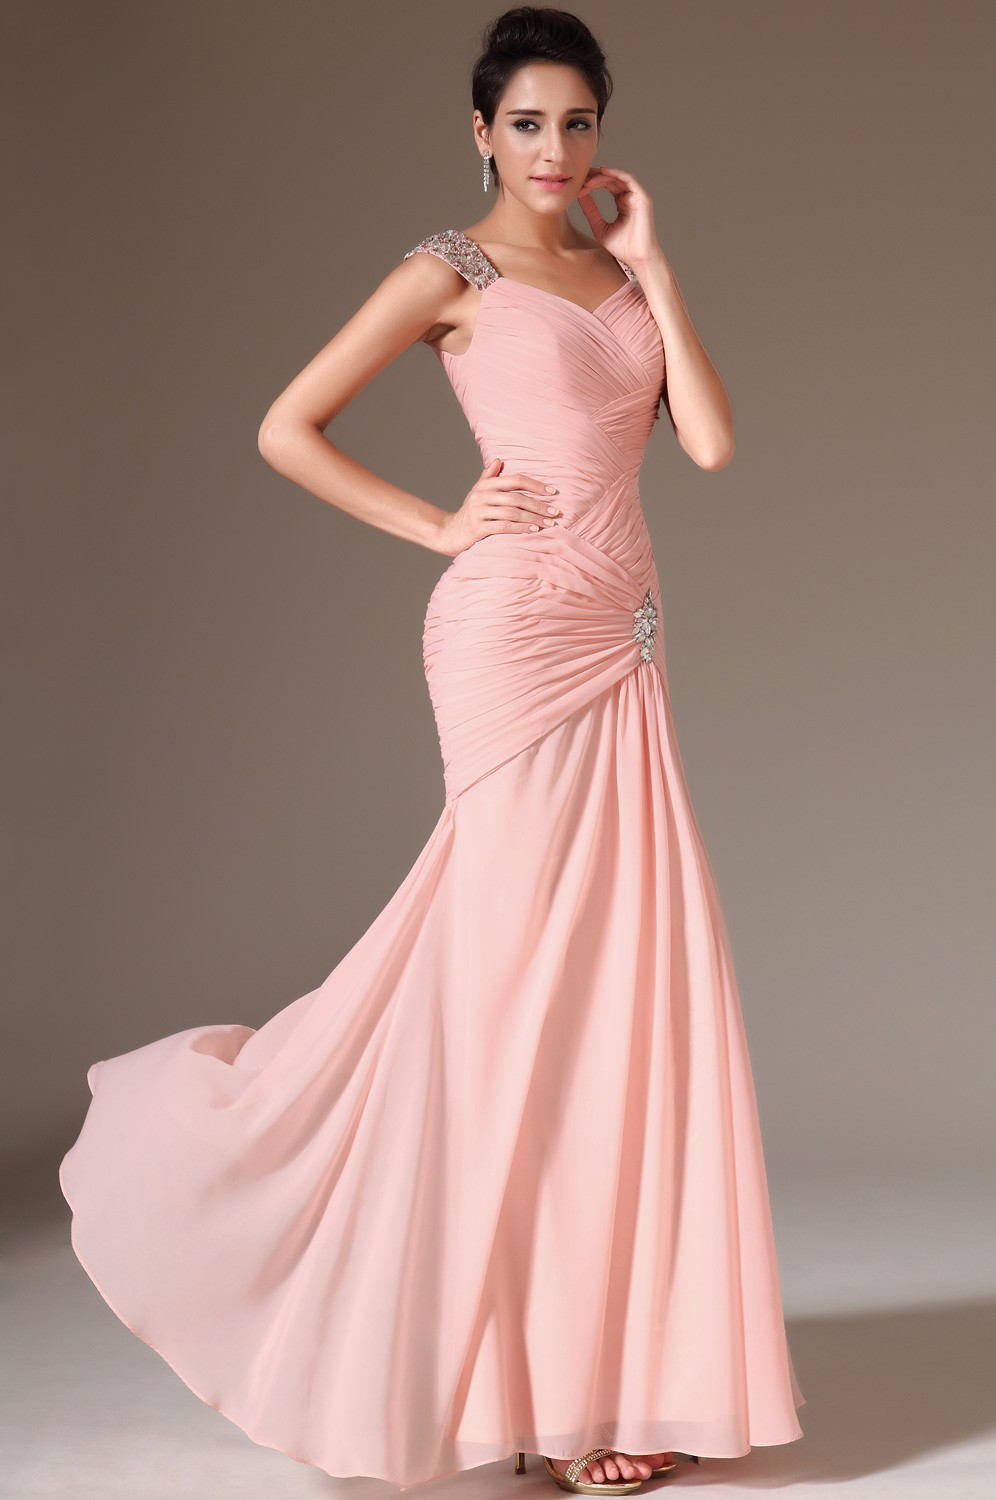 2015 Elegant Light Pink Mermaid Prom Dress Long Chiffon Beading Prom ...